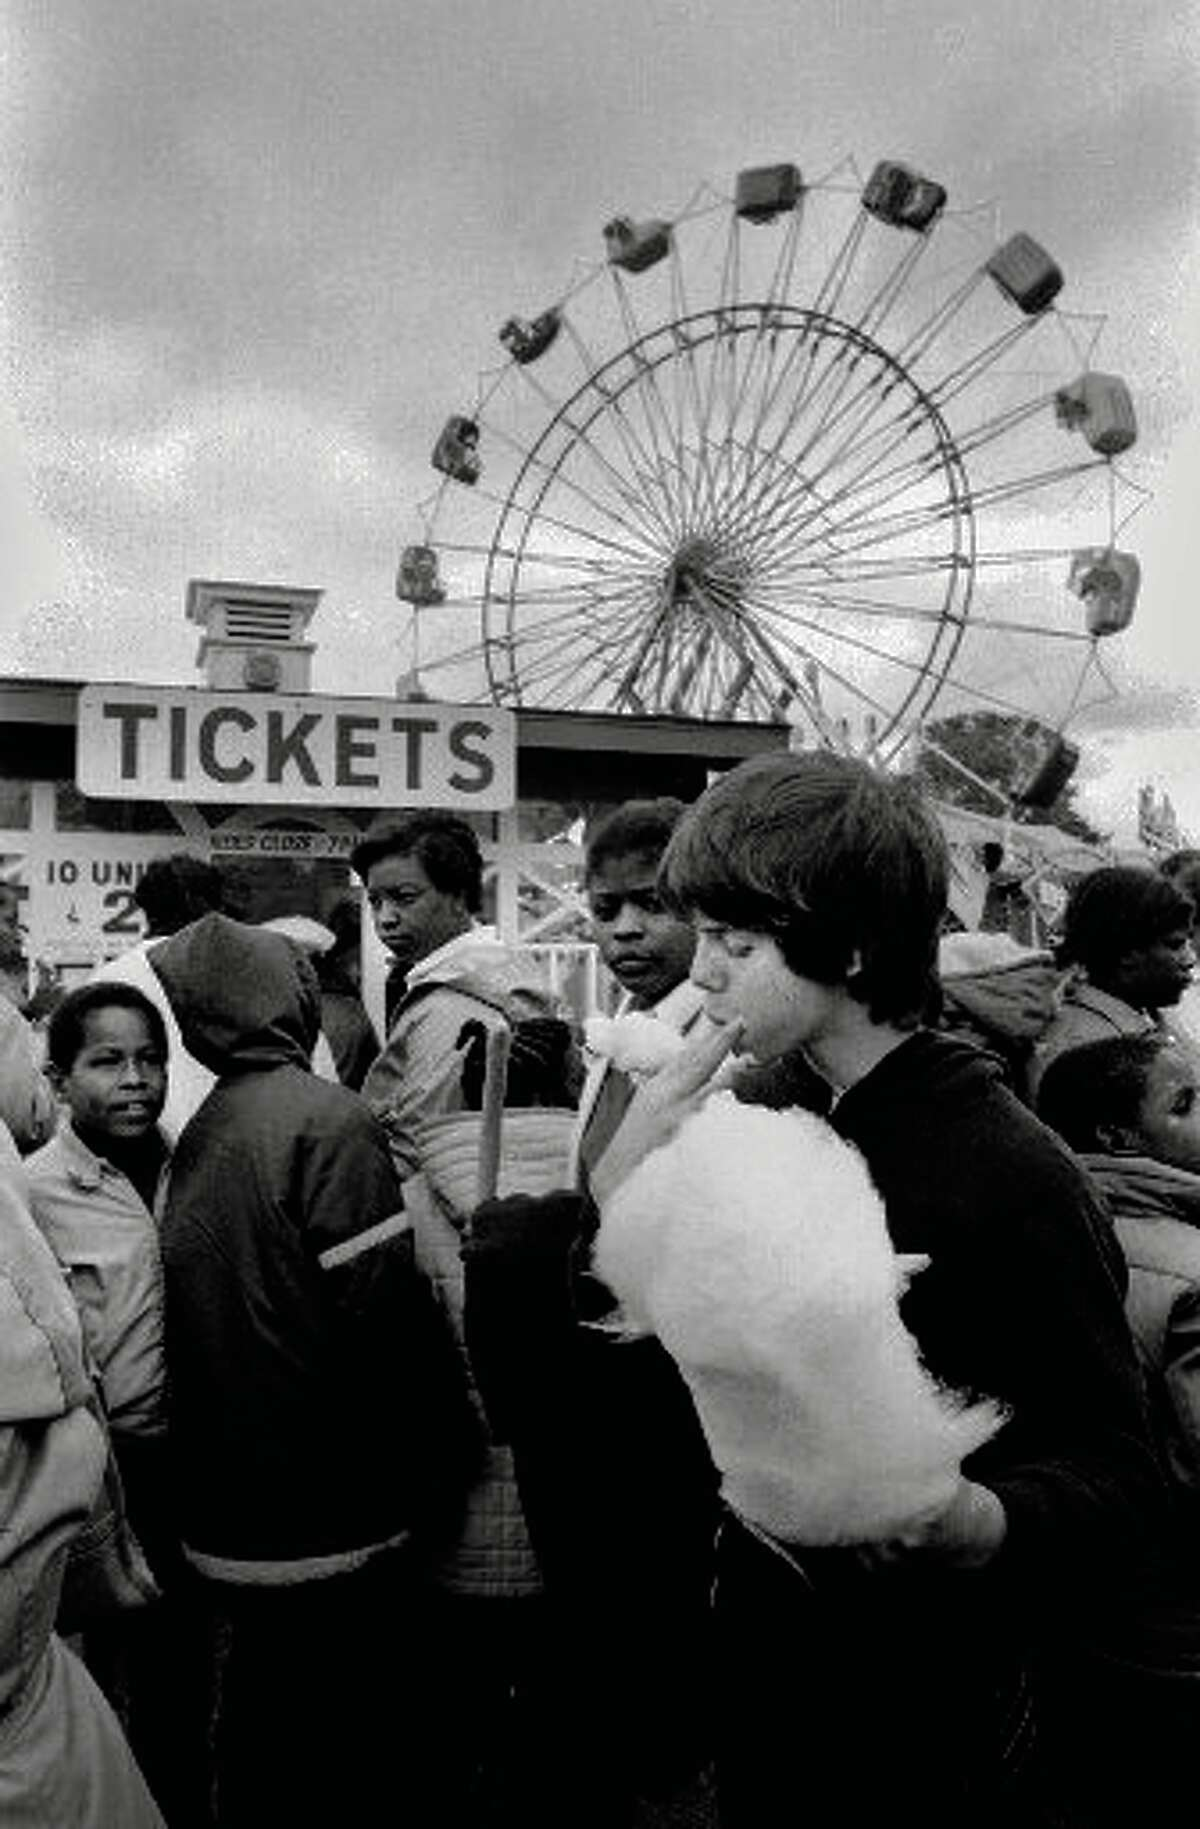 The Great Danbury Fair attracted more than 40,000 people on Oct. 3, 1981. Mark Schwartz, right, of Brooklyn, N.Y., was one of many who enjoyed the cotton candy on the first day of the last year of the fair.